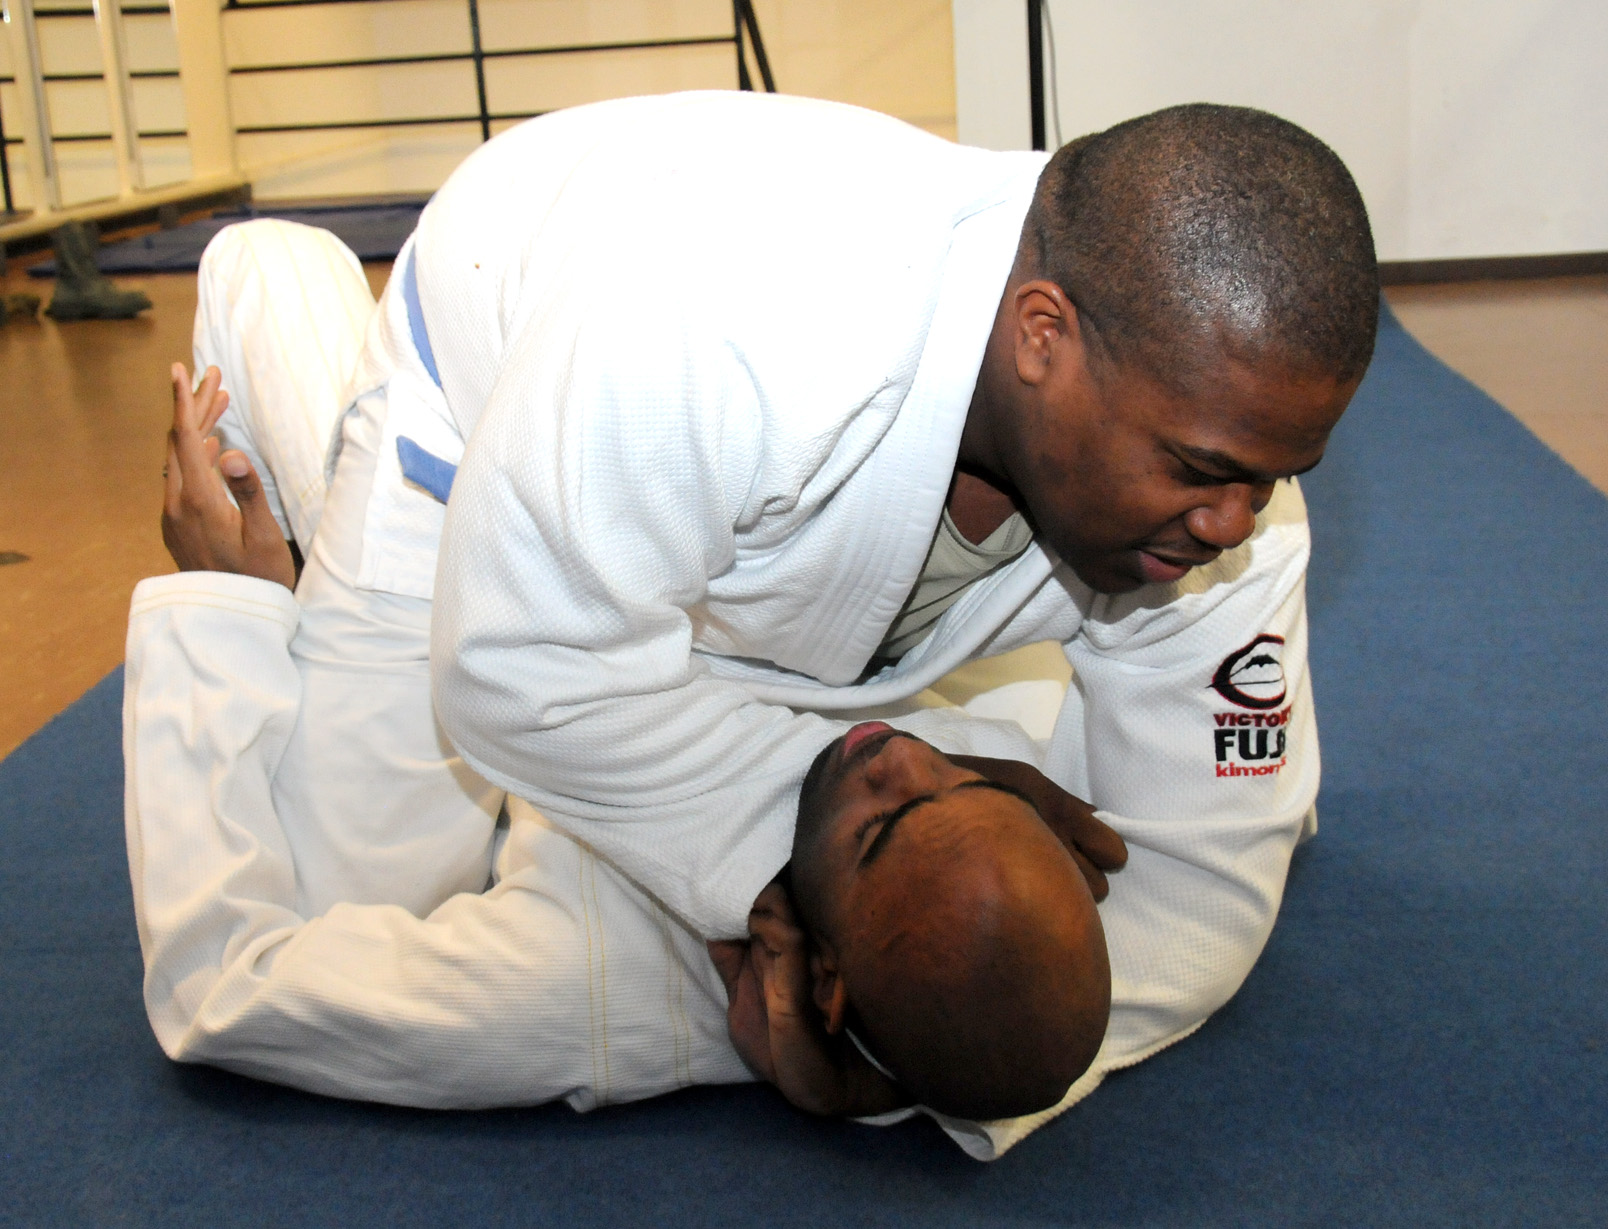 The awesome Ezekiel choke